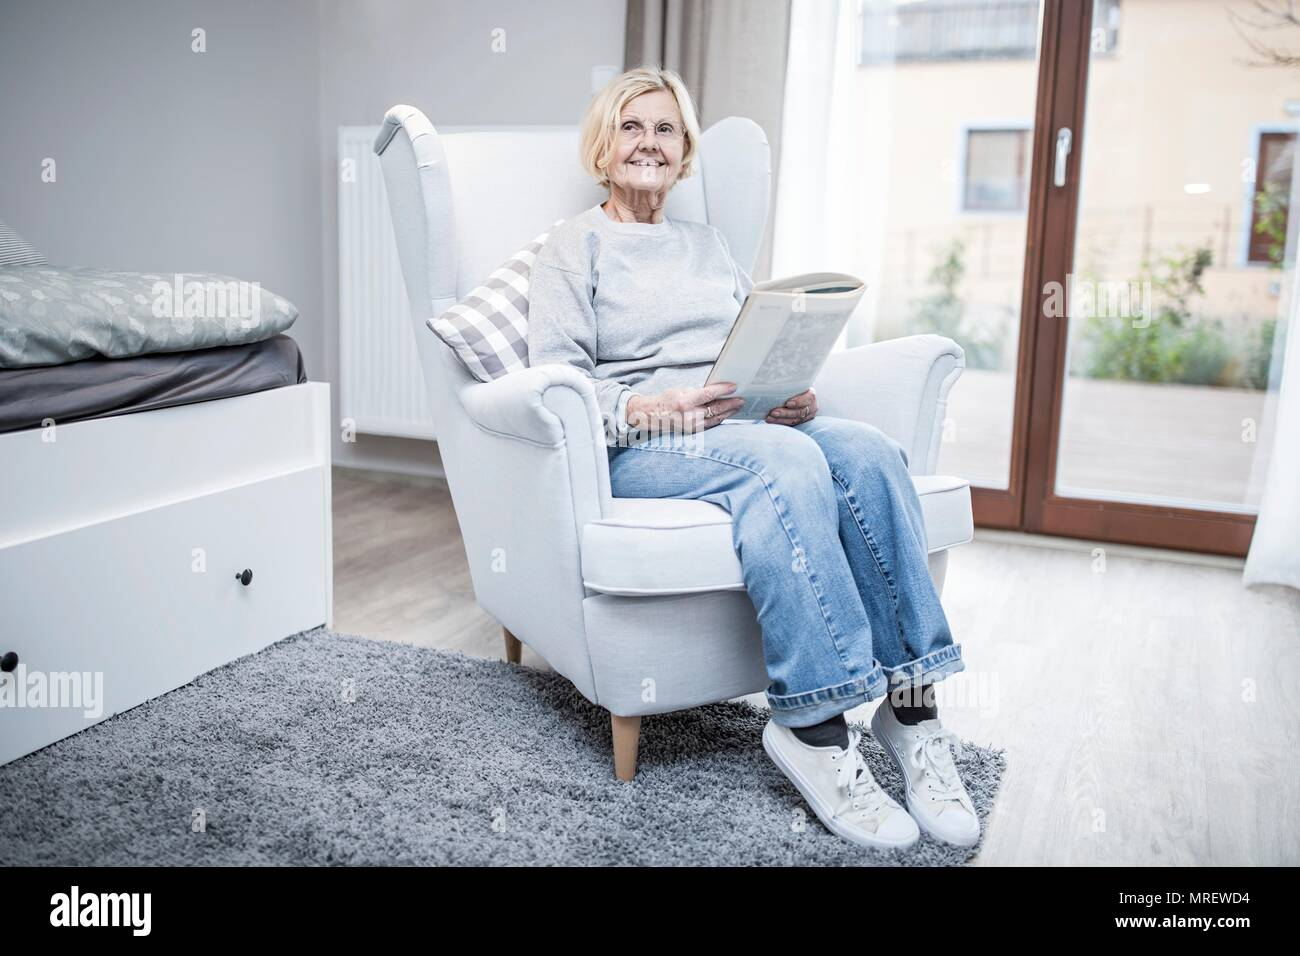 Senior woman sitting in armchair with magazine in care home. - Stock Image